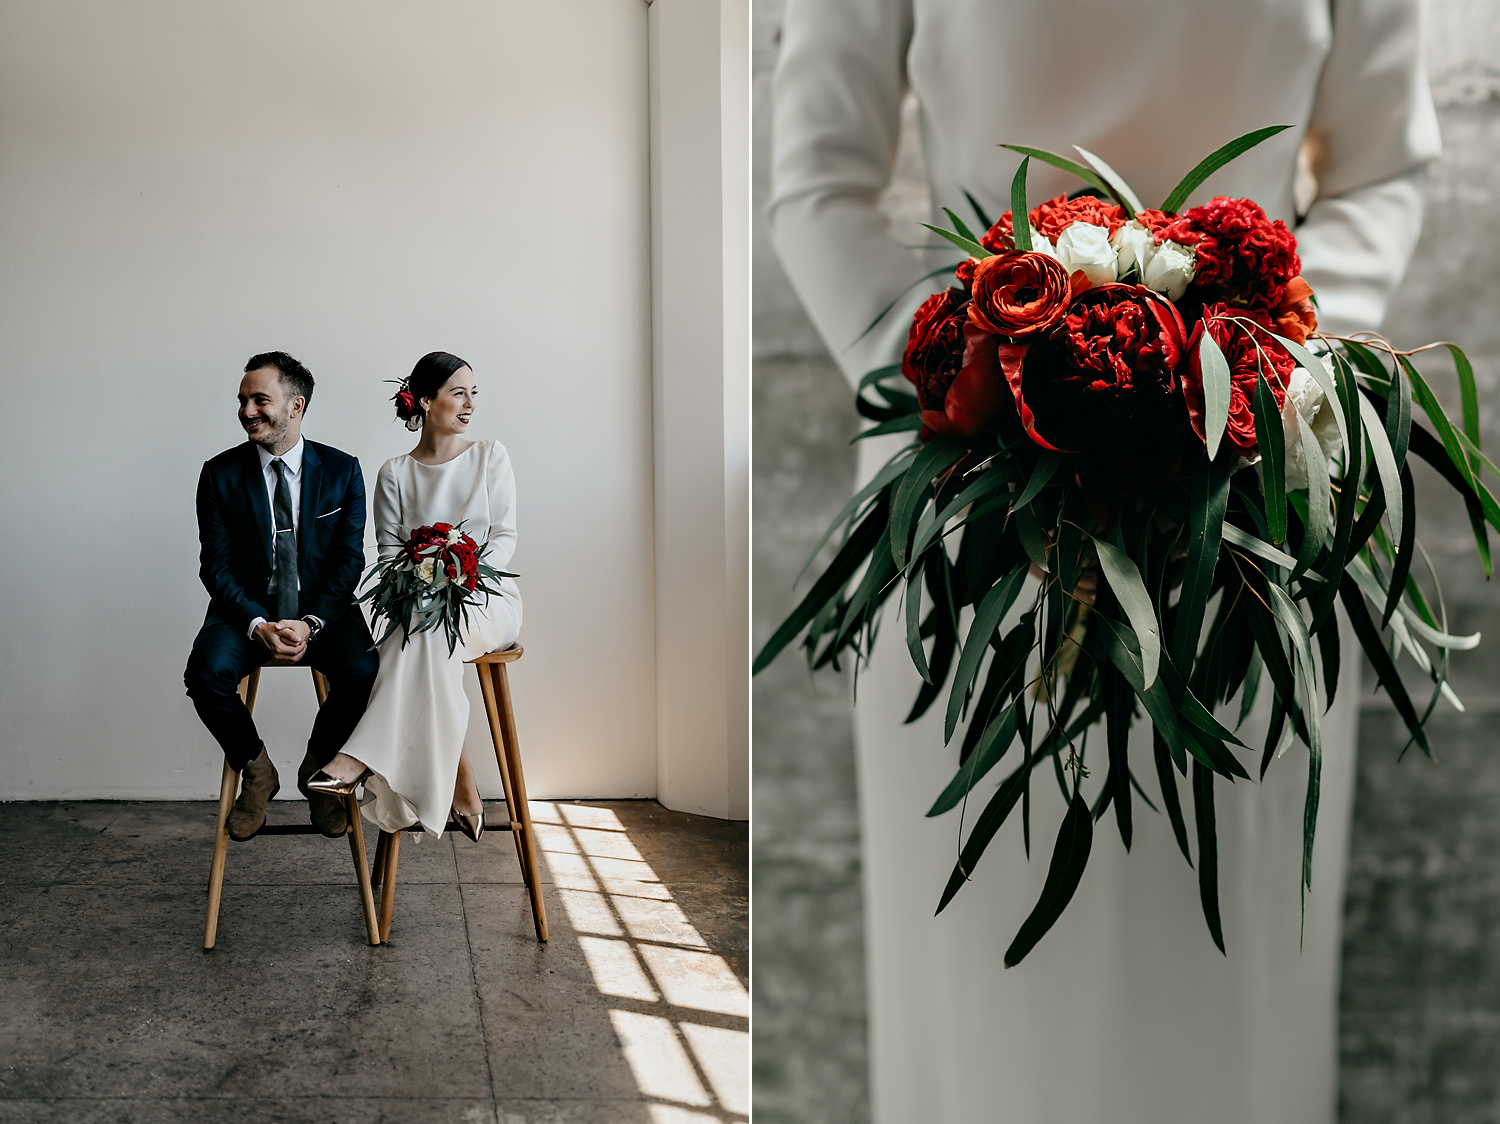 DTLA+Hudson+Loft+Wedding+Photographer+7.jpg